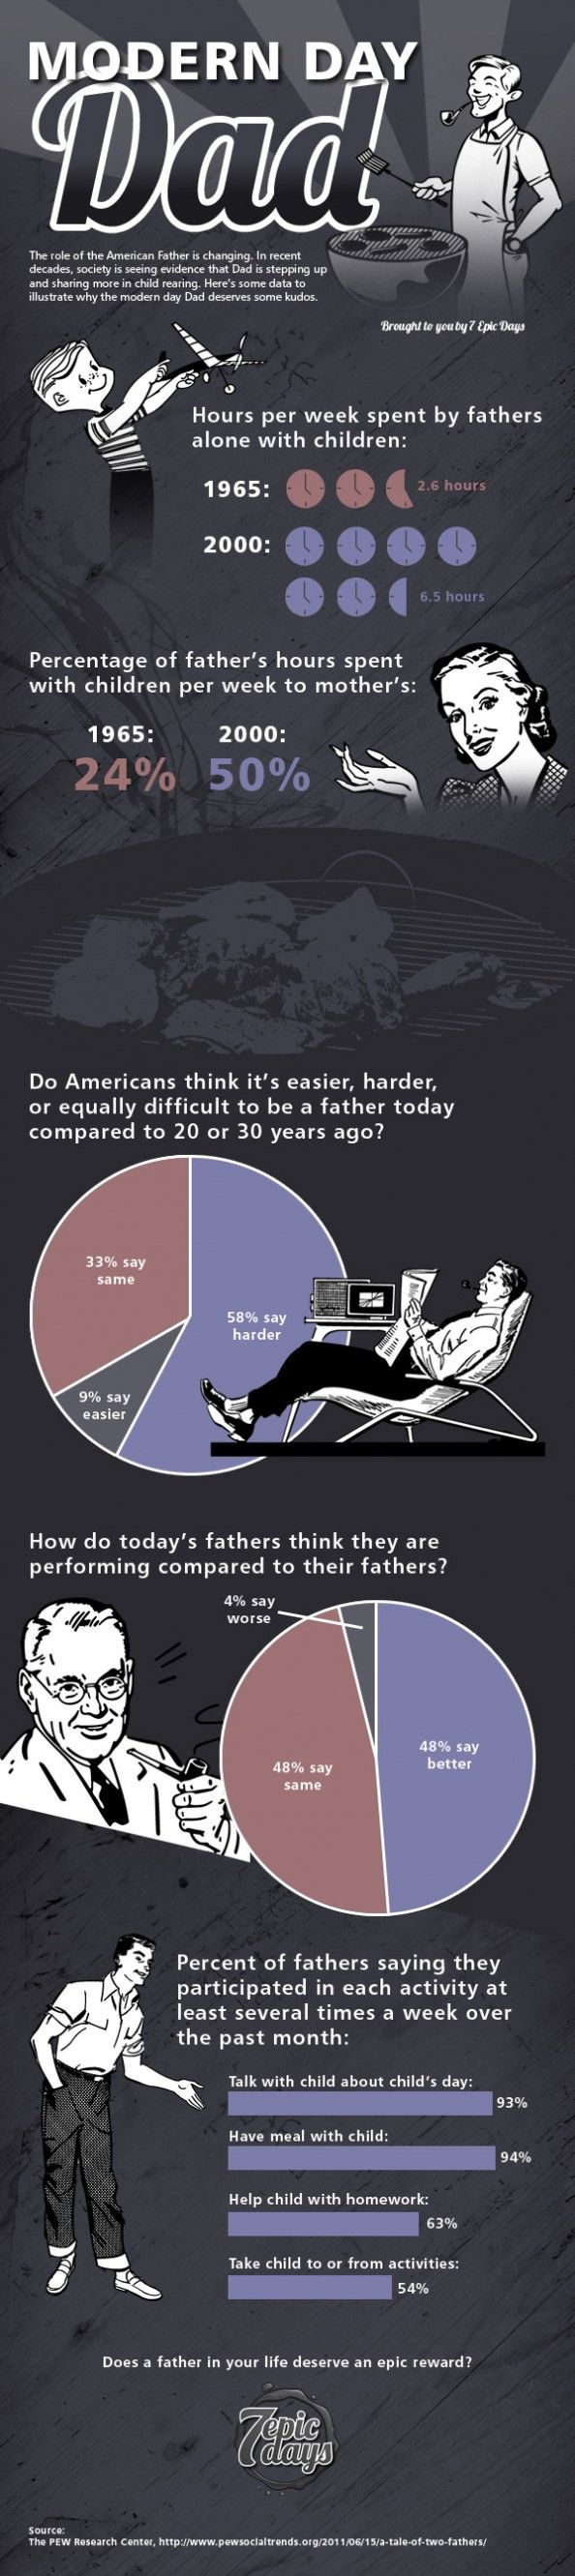 Modern day dads vs. their 1965 counterparts Infographic